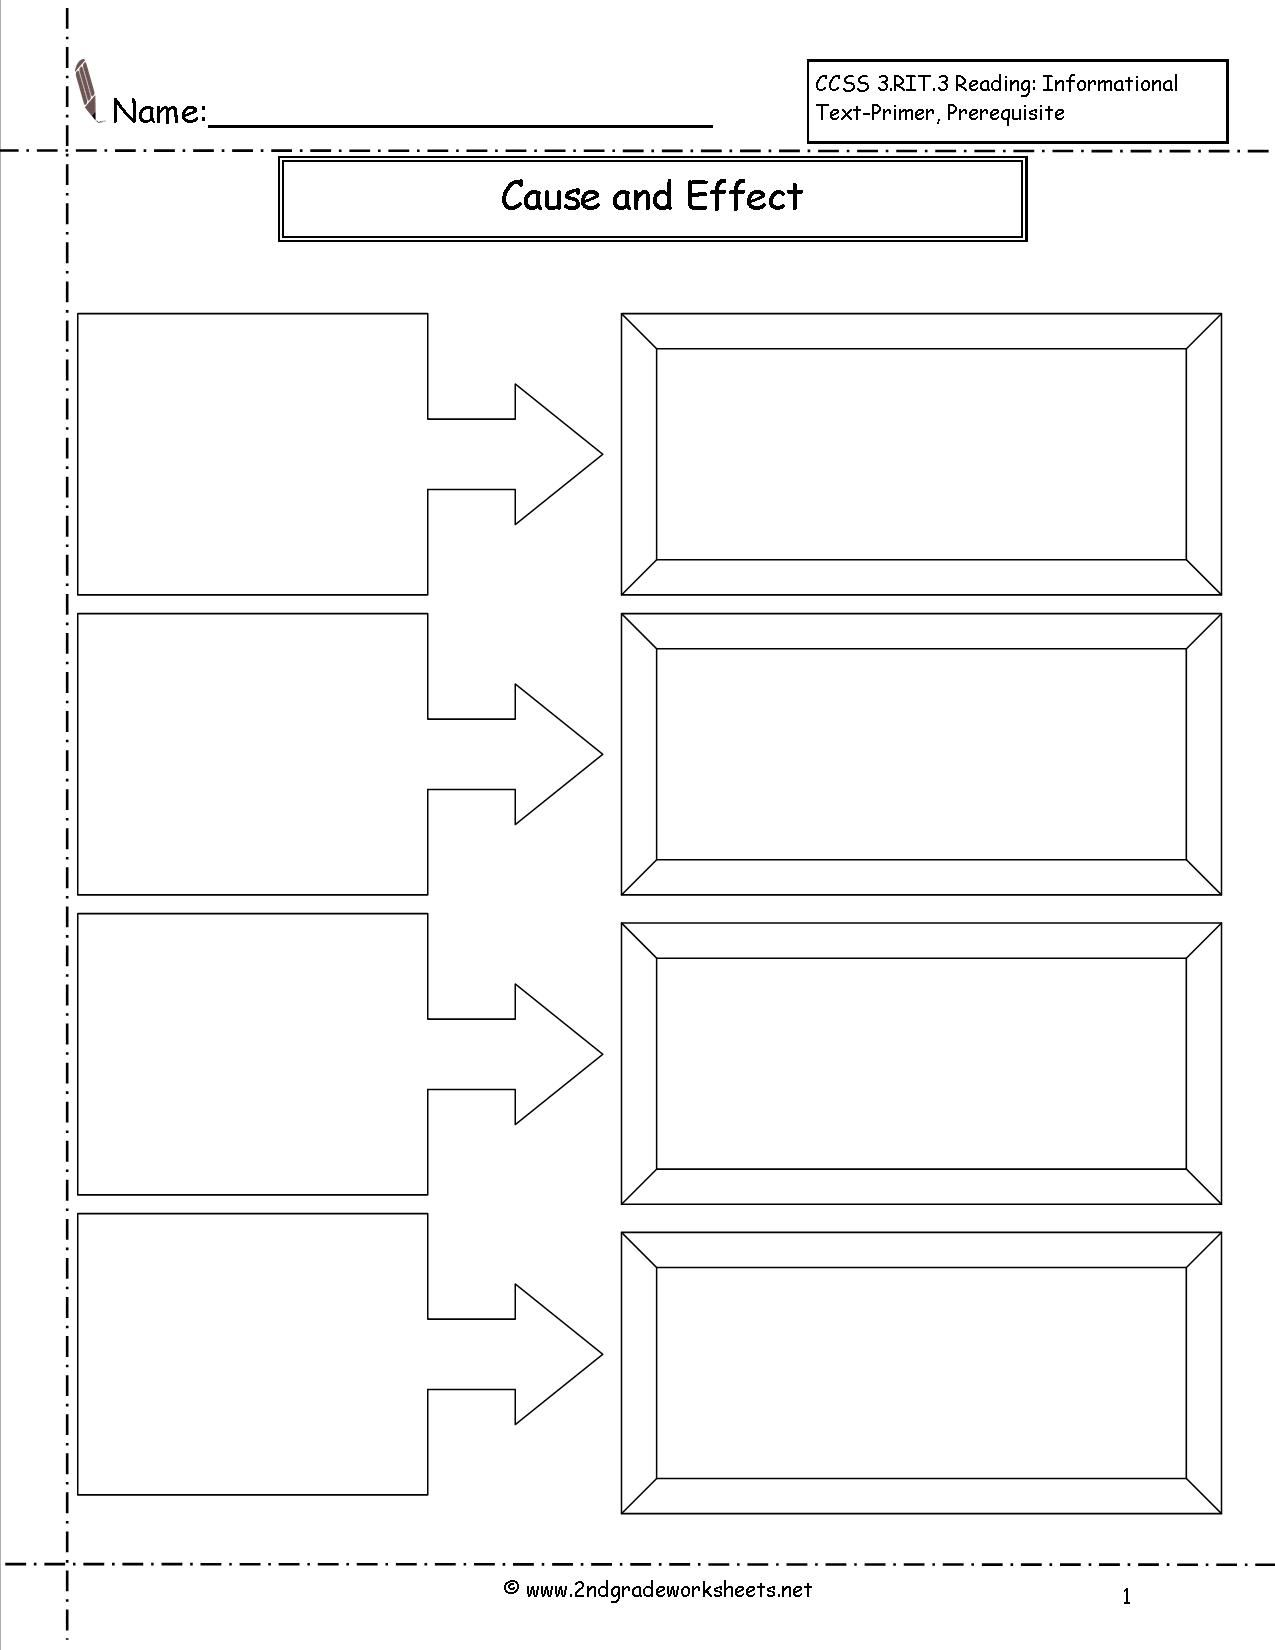 cause and effect worksheet - Google Search | Reading | Pinterest ...